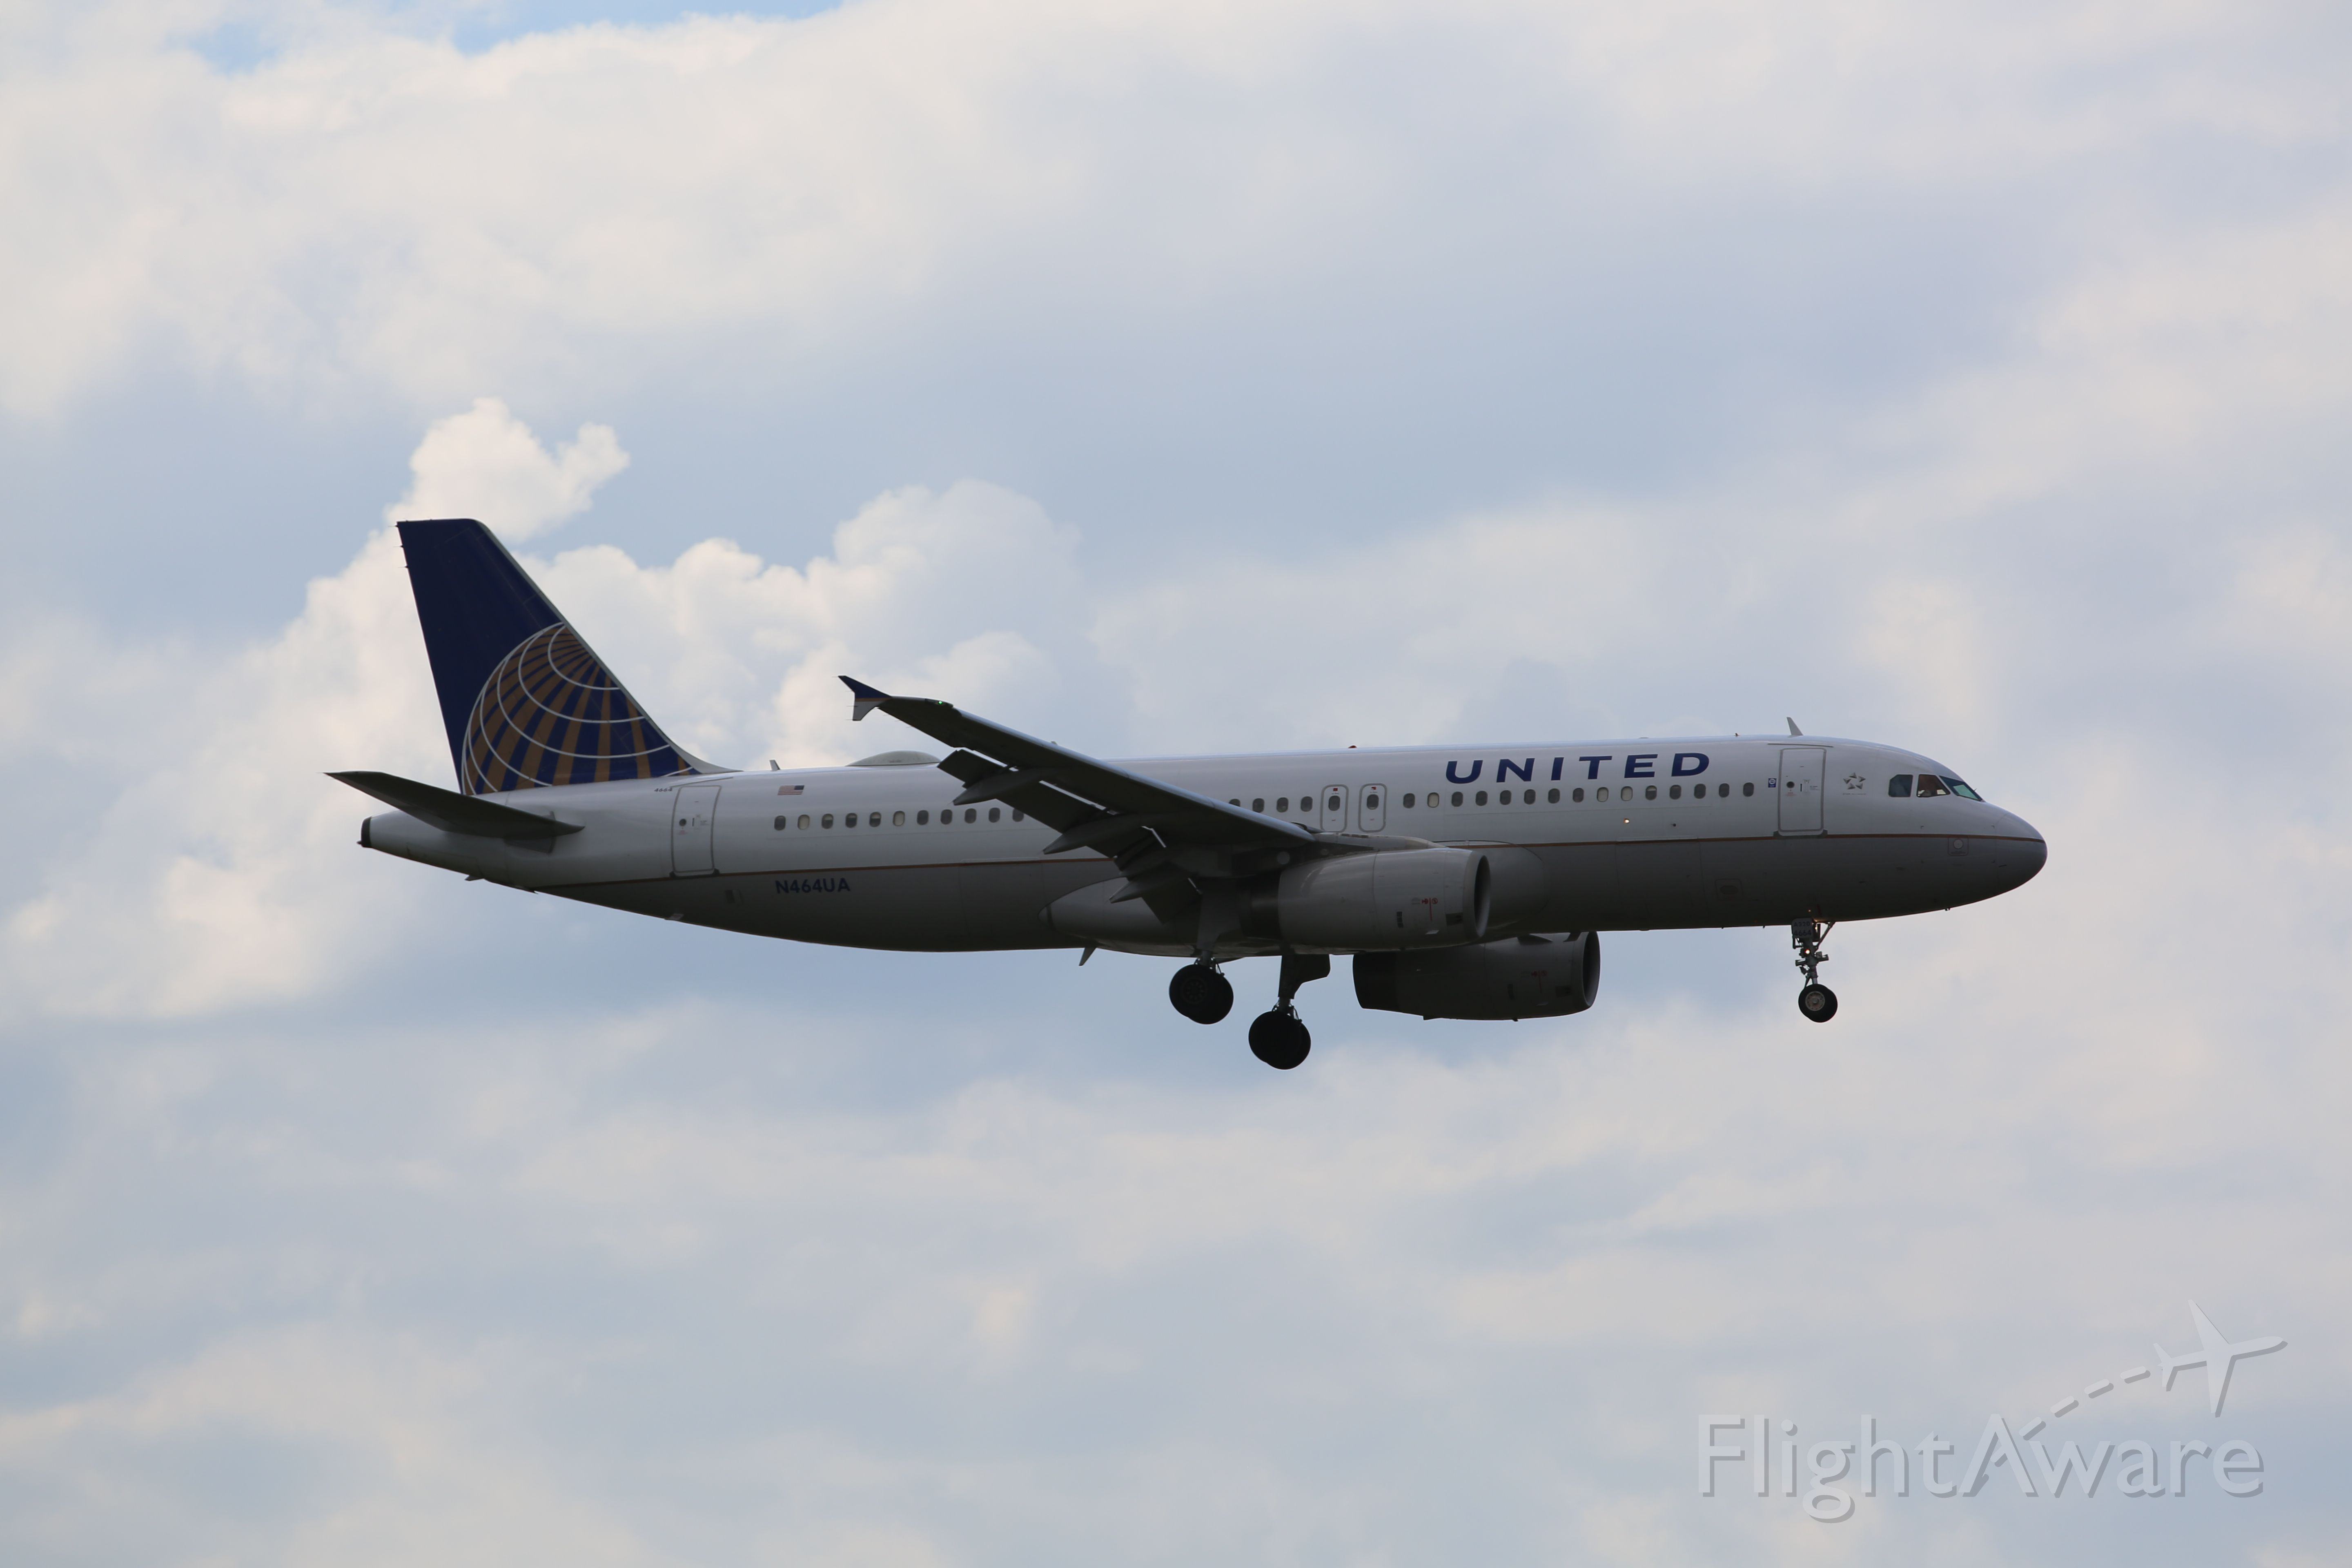 Airbus A320 (N464UA) - United A320 on final to 04L. Taken on 8/17/14